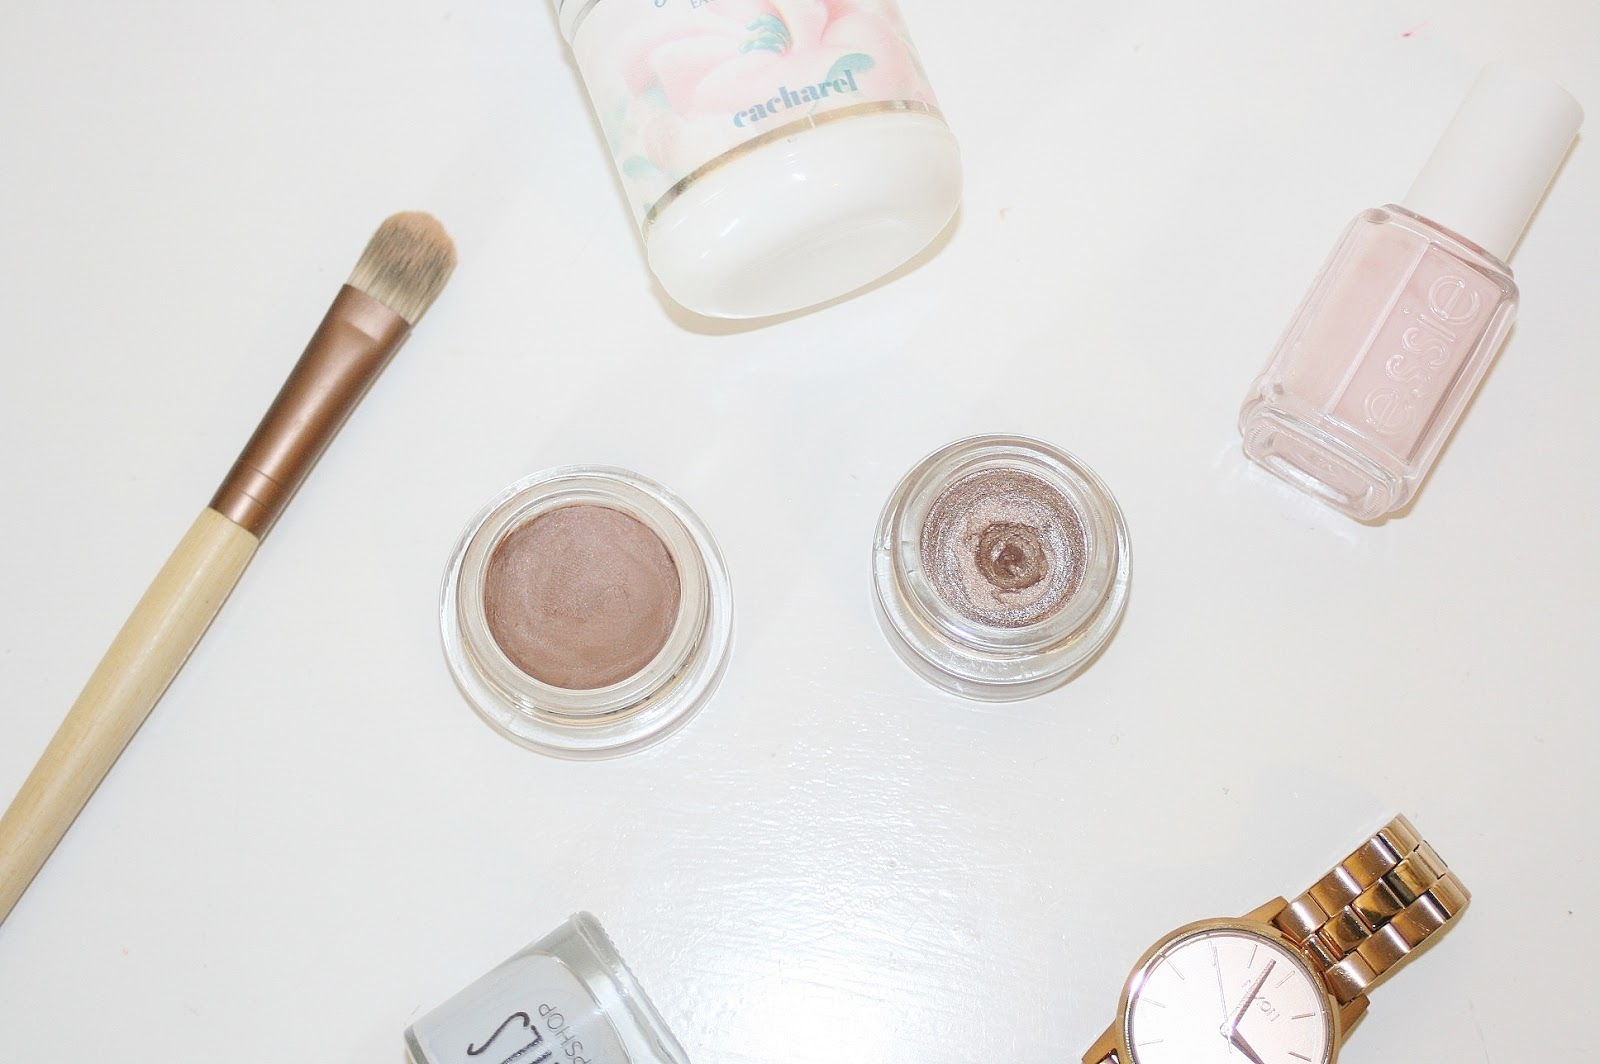 Katherine Penney Chic Cream Eyeshadows Perfect Pair Drugstore Makeup Beauty Review